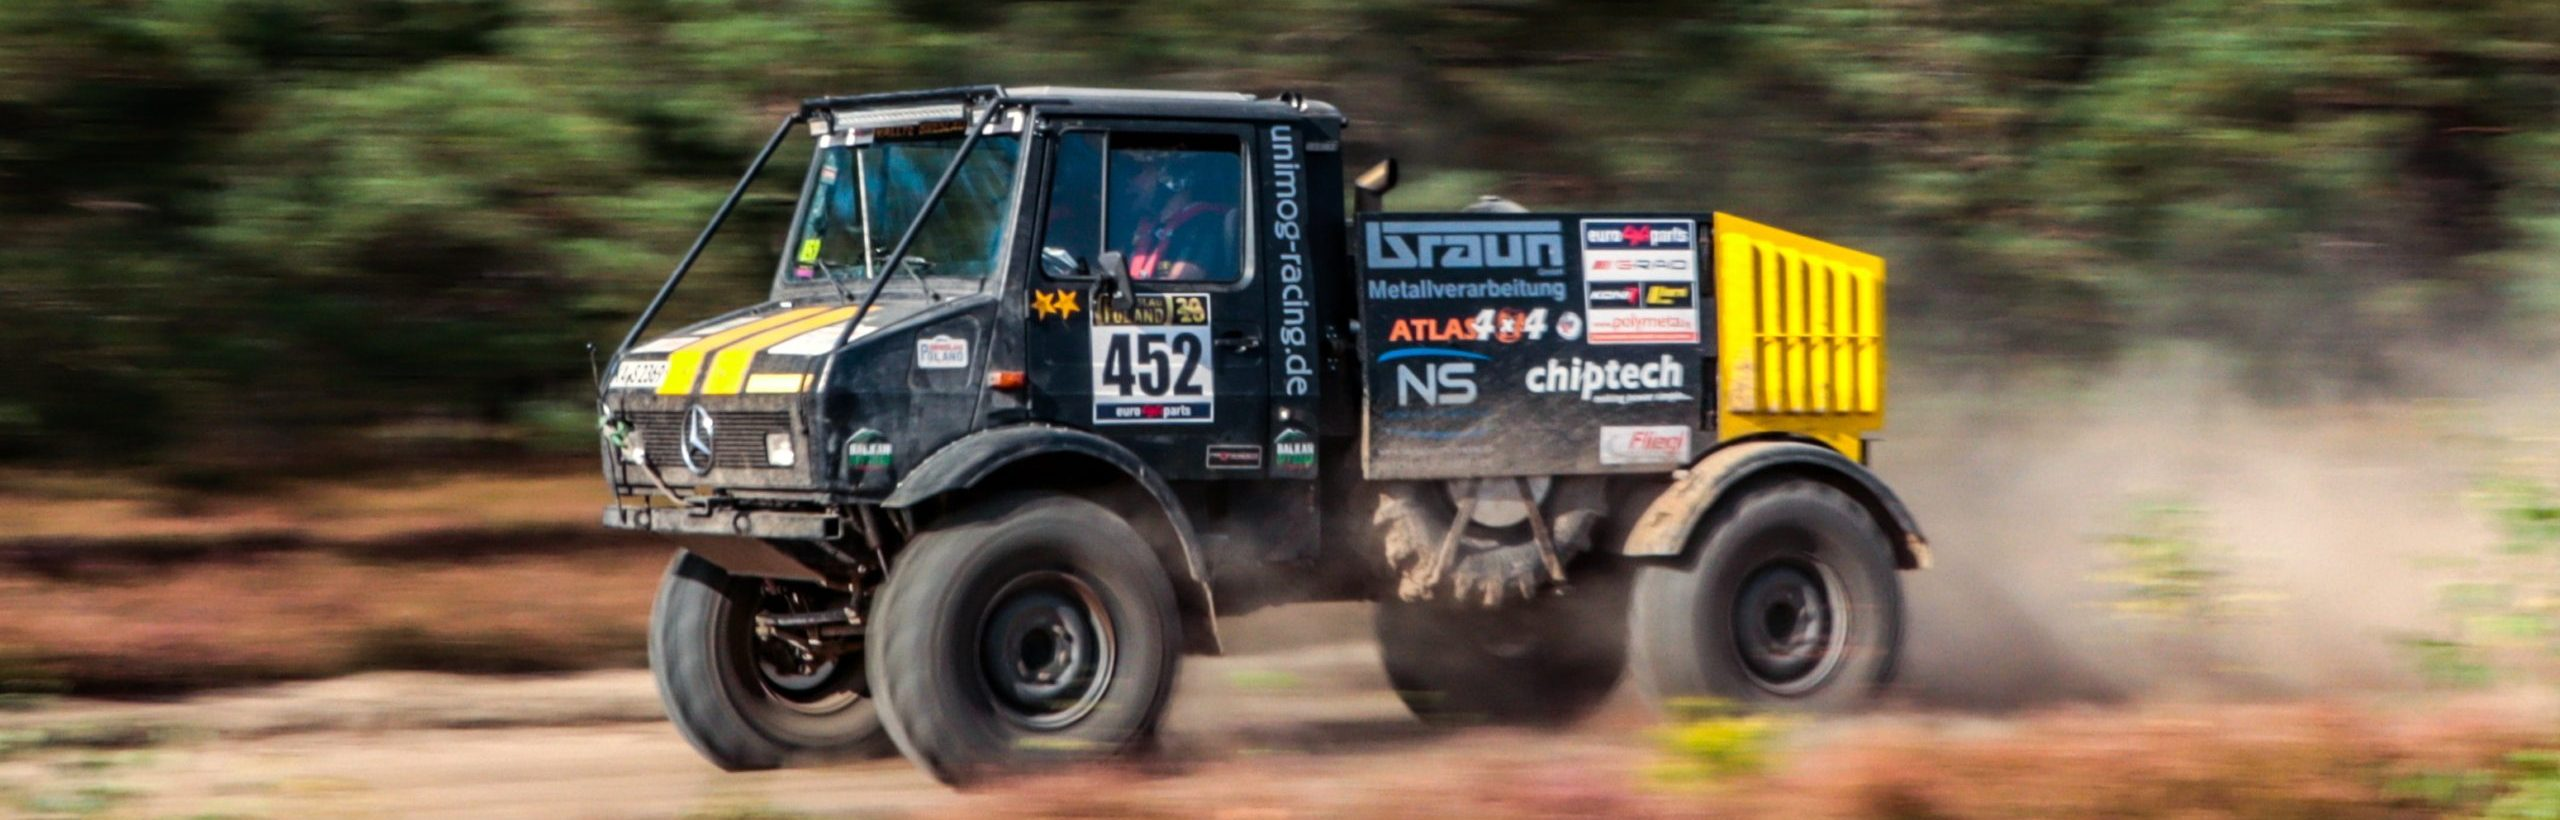 unimog-racing.de  –  driving Unimog offroad, that´s our passion